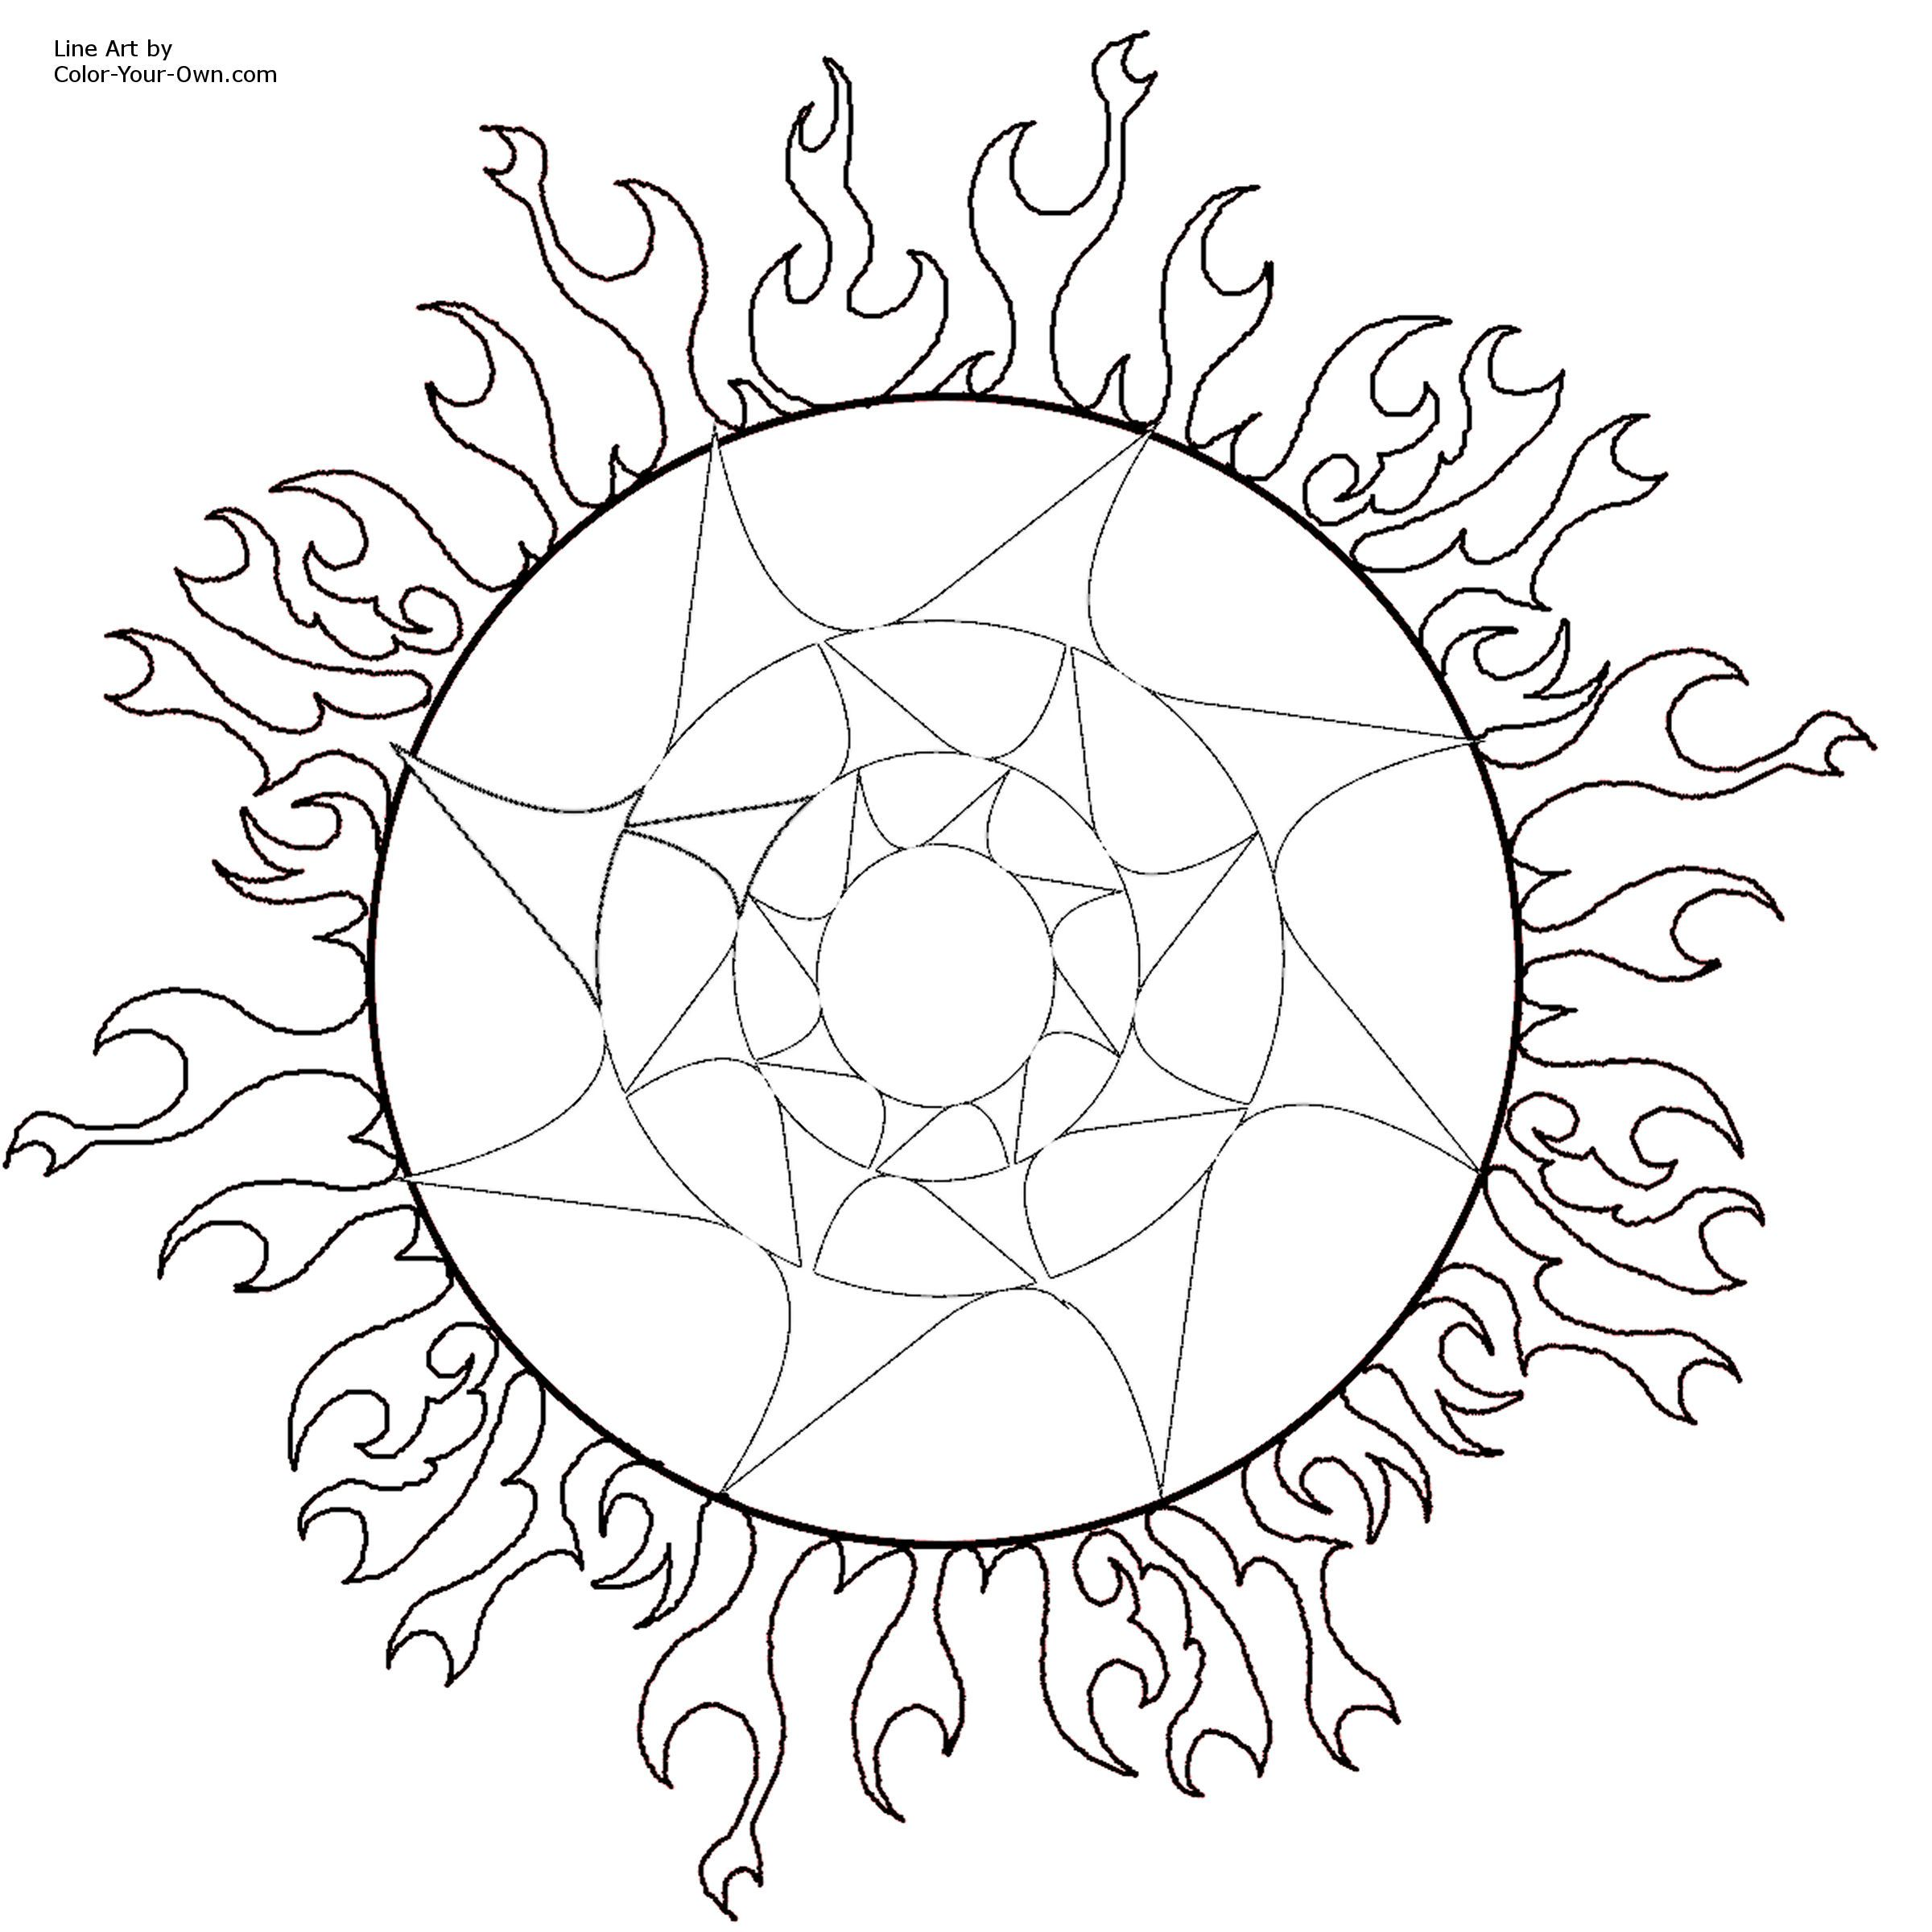 Coloring Pages Native American Symbols Coloring Pages 1000 images about places to visit on pinterest coloring american symbols and mandala pages